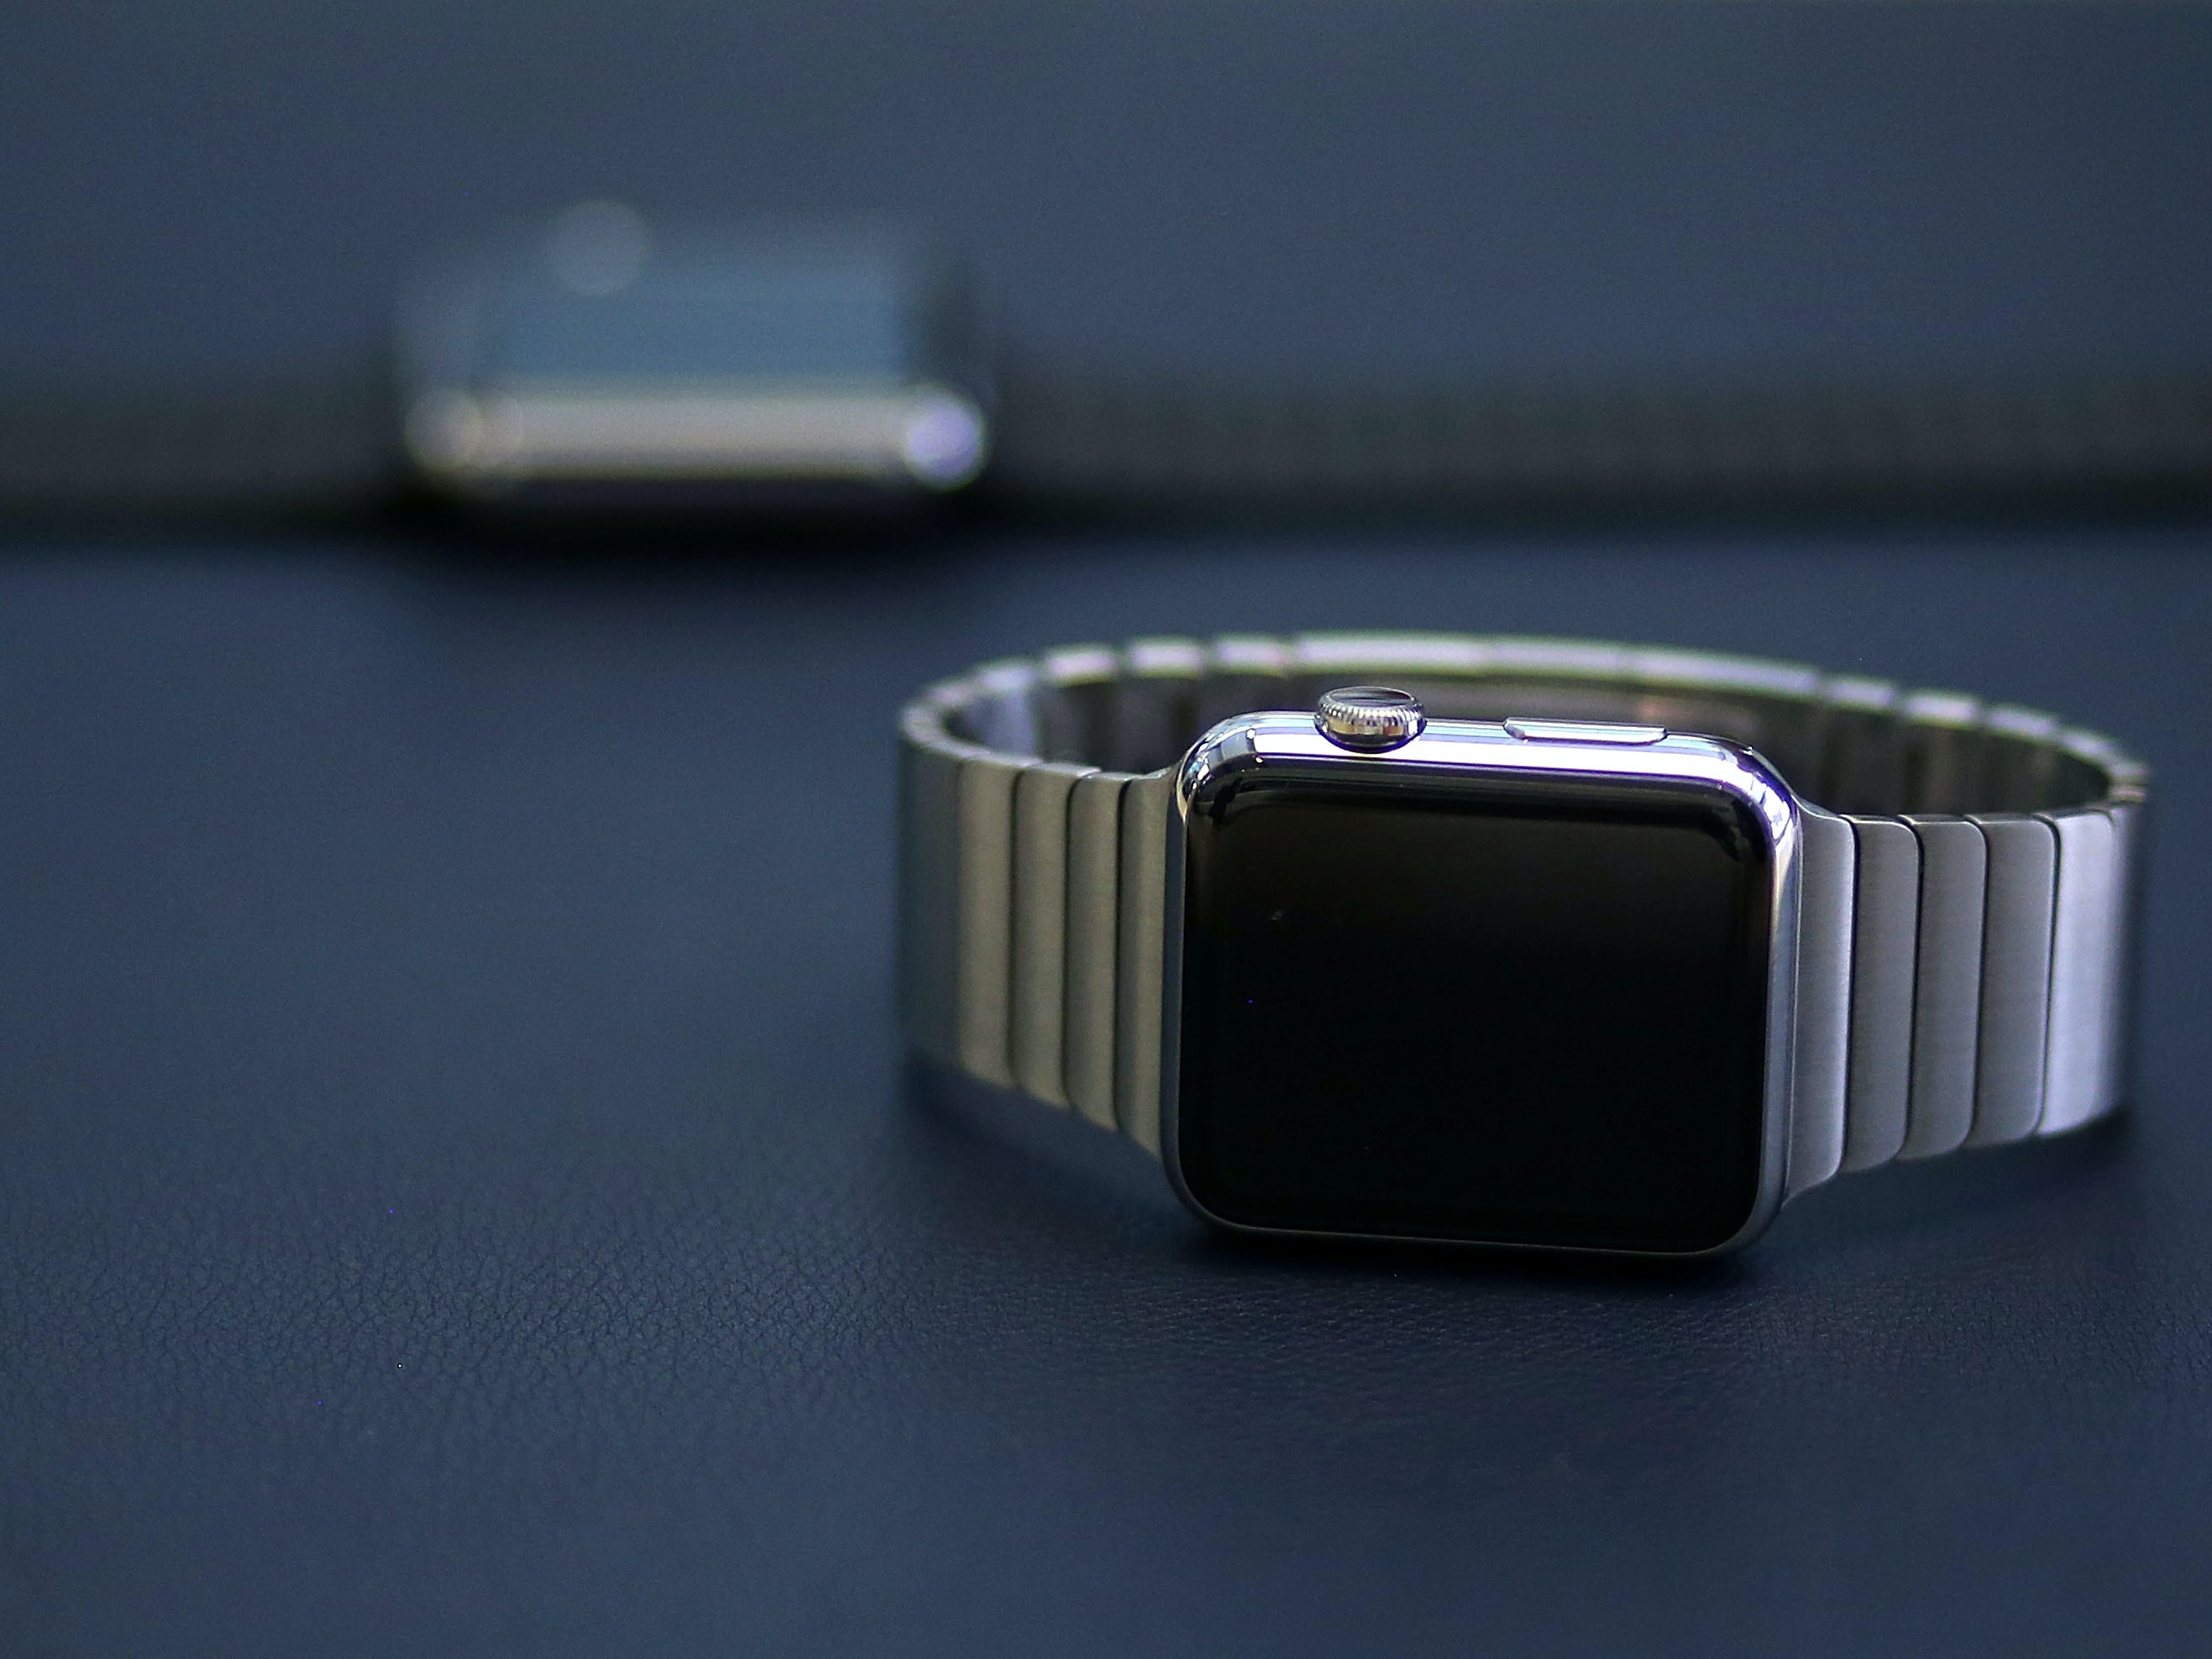 What Data Sleeps in Your Smartwatch?